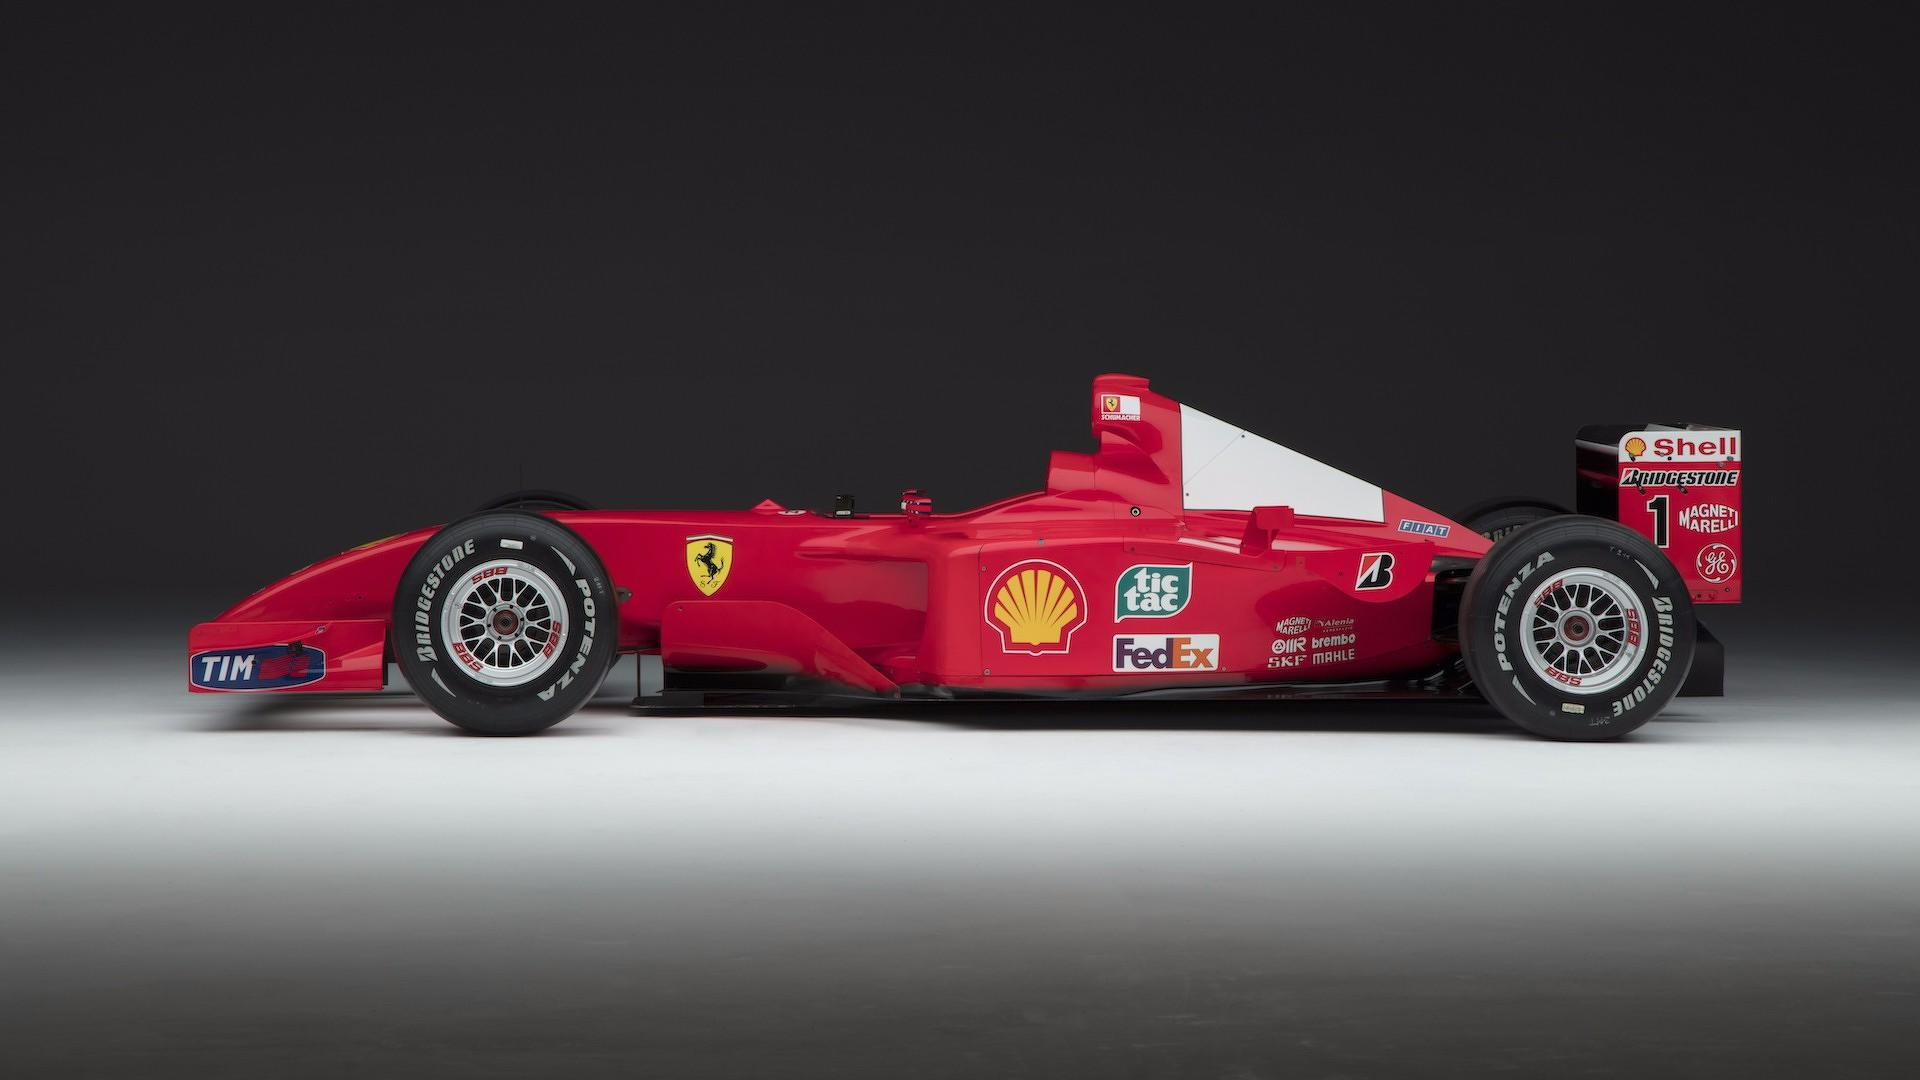 Michael Schumacher's Ferrari F2001 race car from the 2001 Formula 1 World Championship